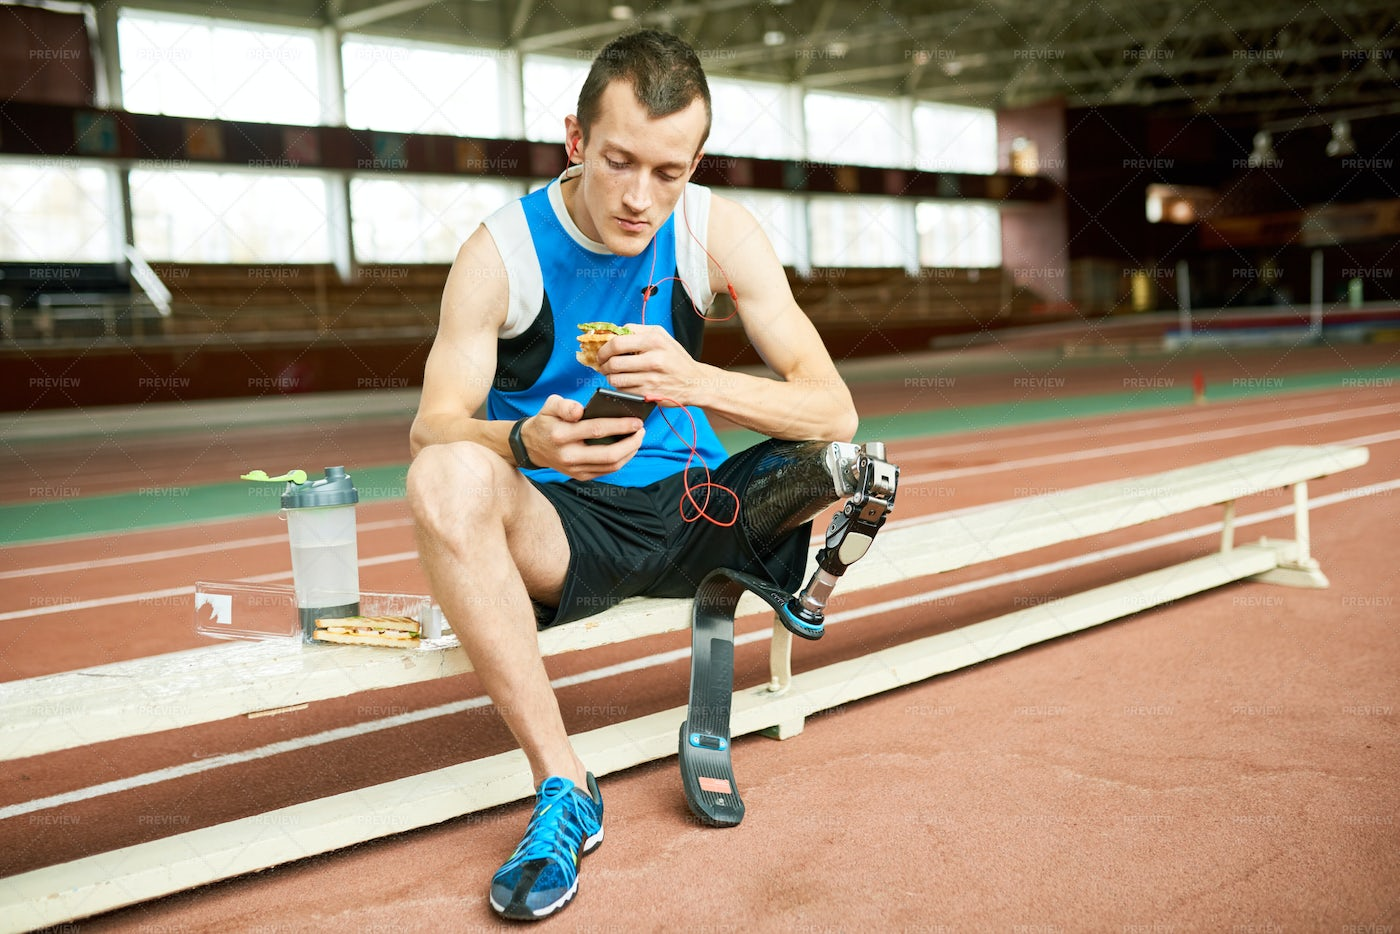 Handicapped Sportsman Eating...: Stock Photos